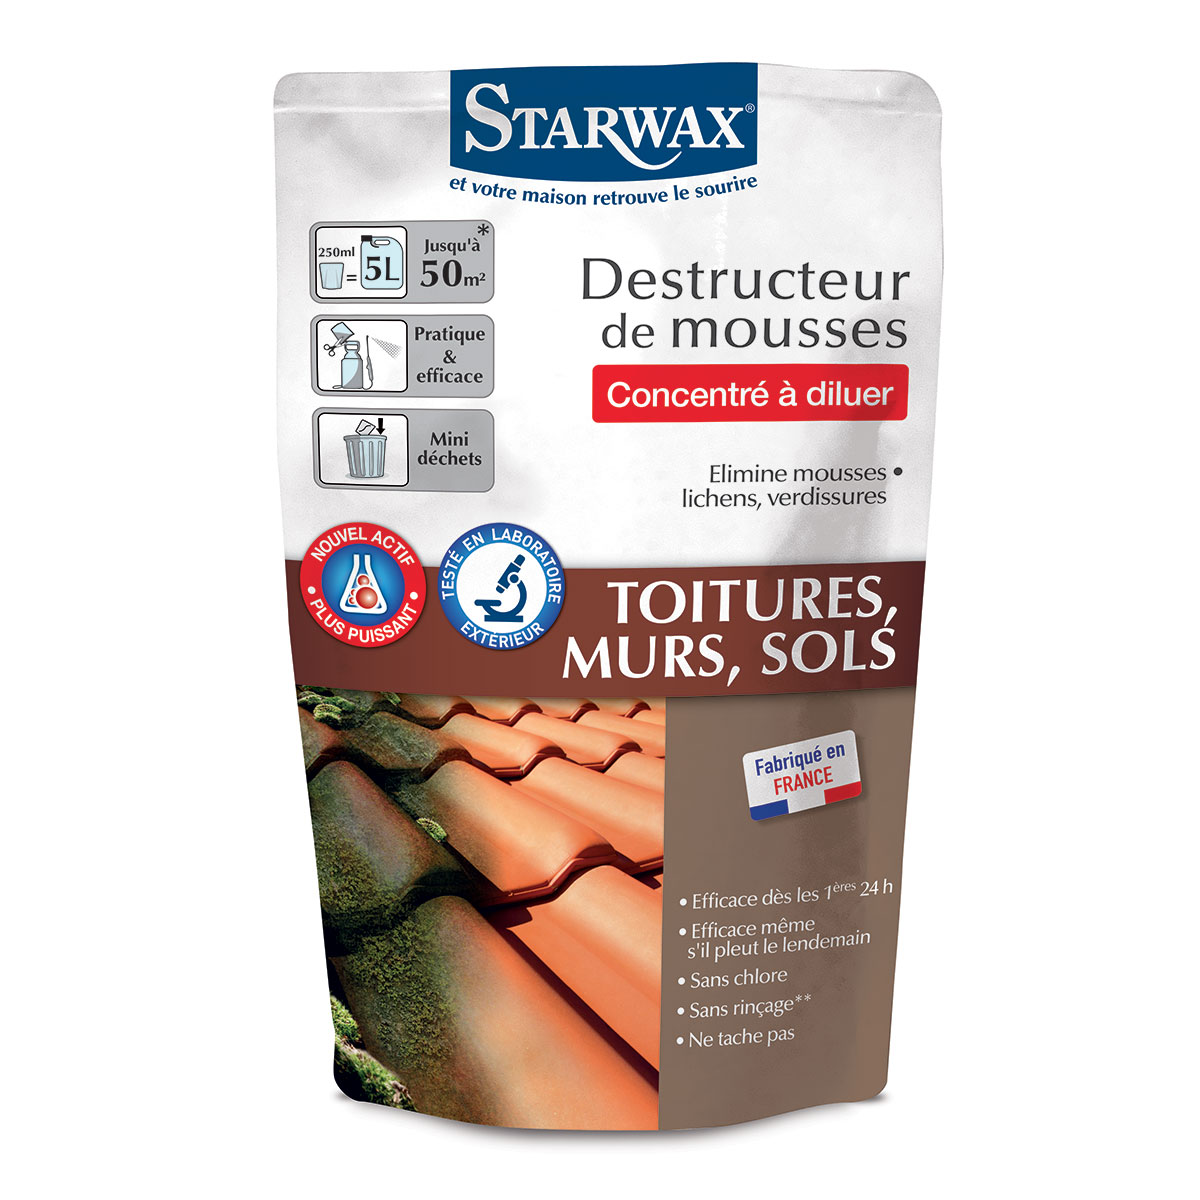 Destructeur mousse concentre à diluer - 250ml